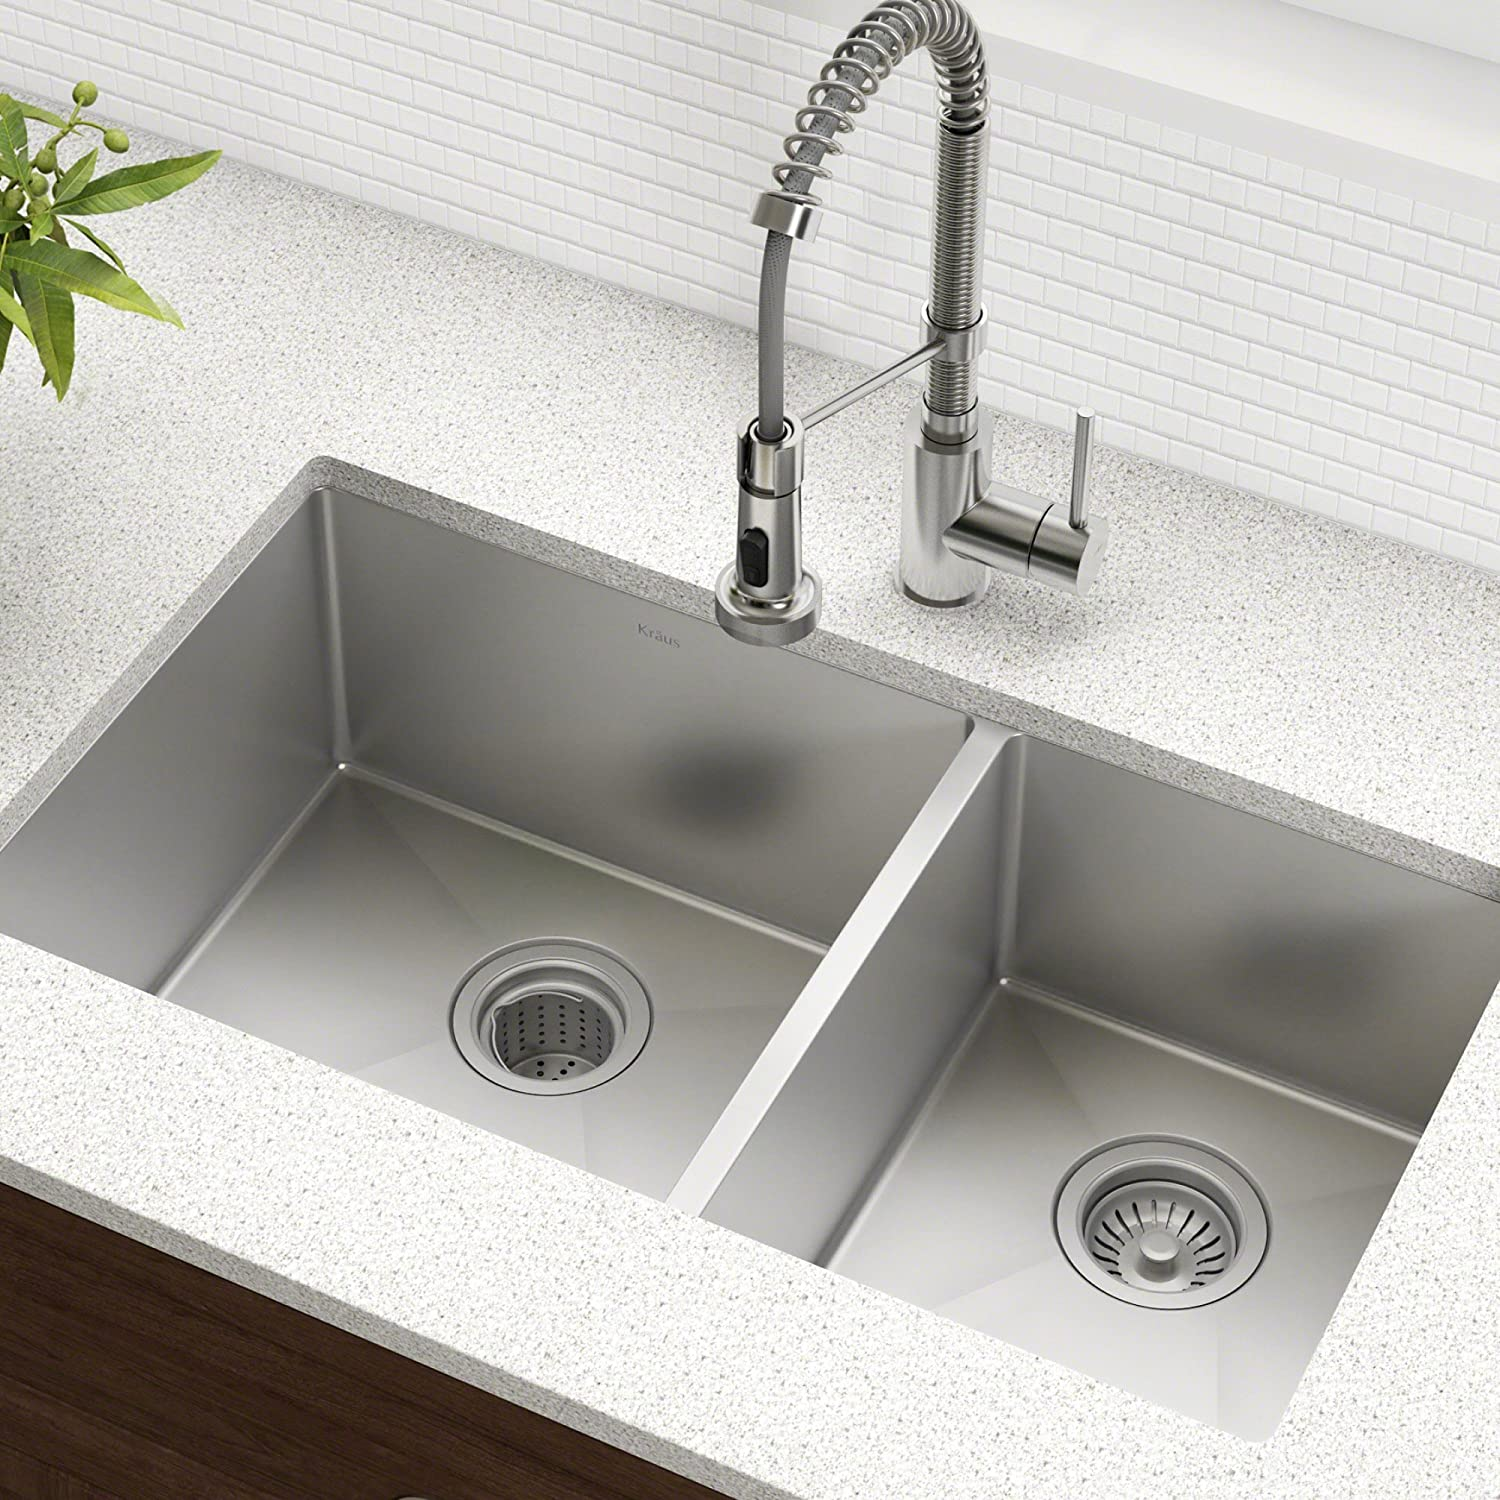 Kraus Double Bowl Kitchen Sink